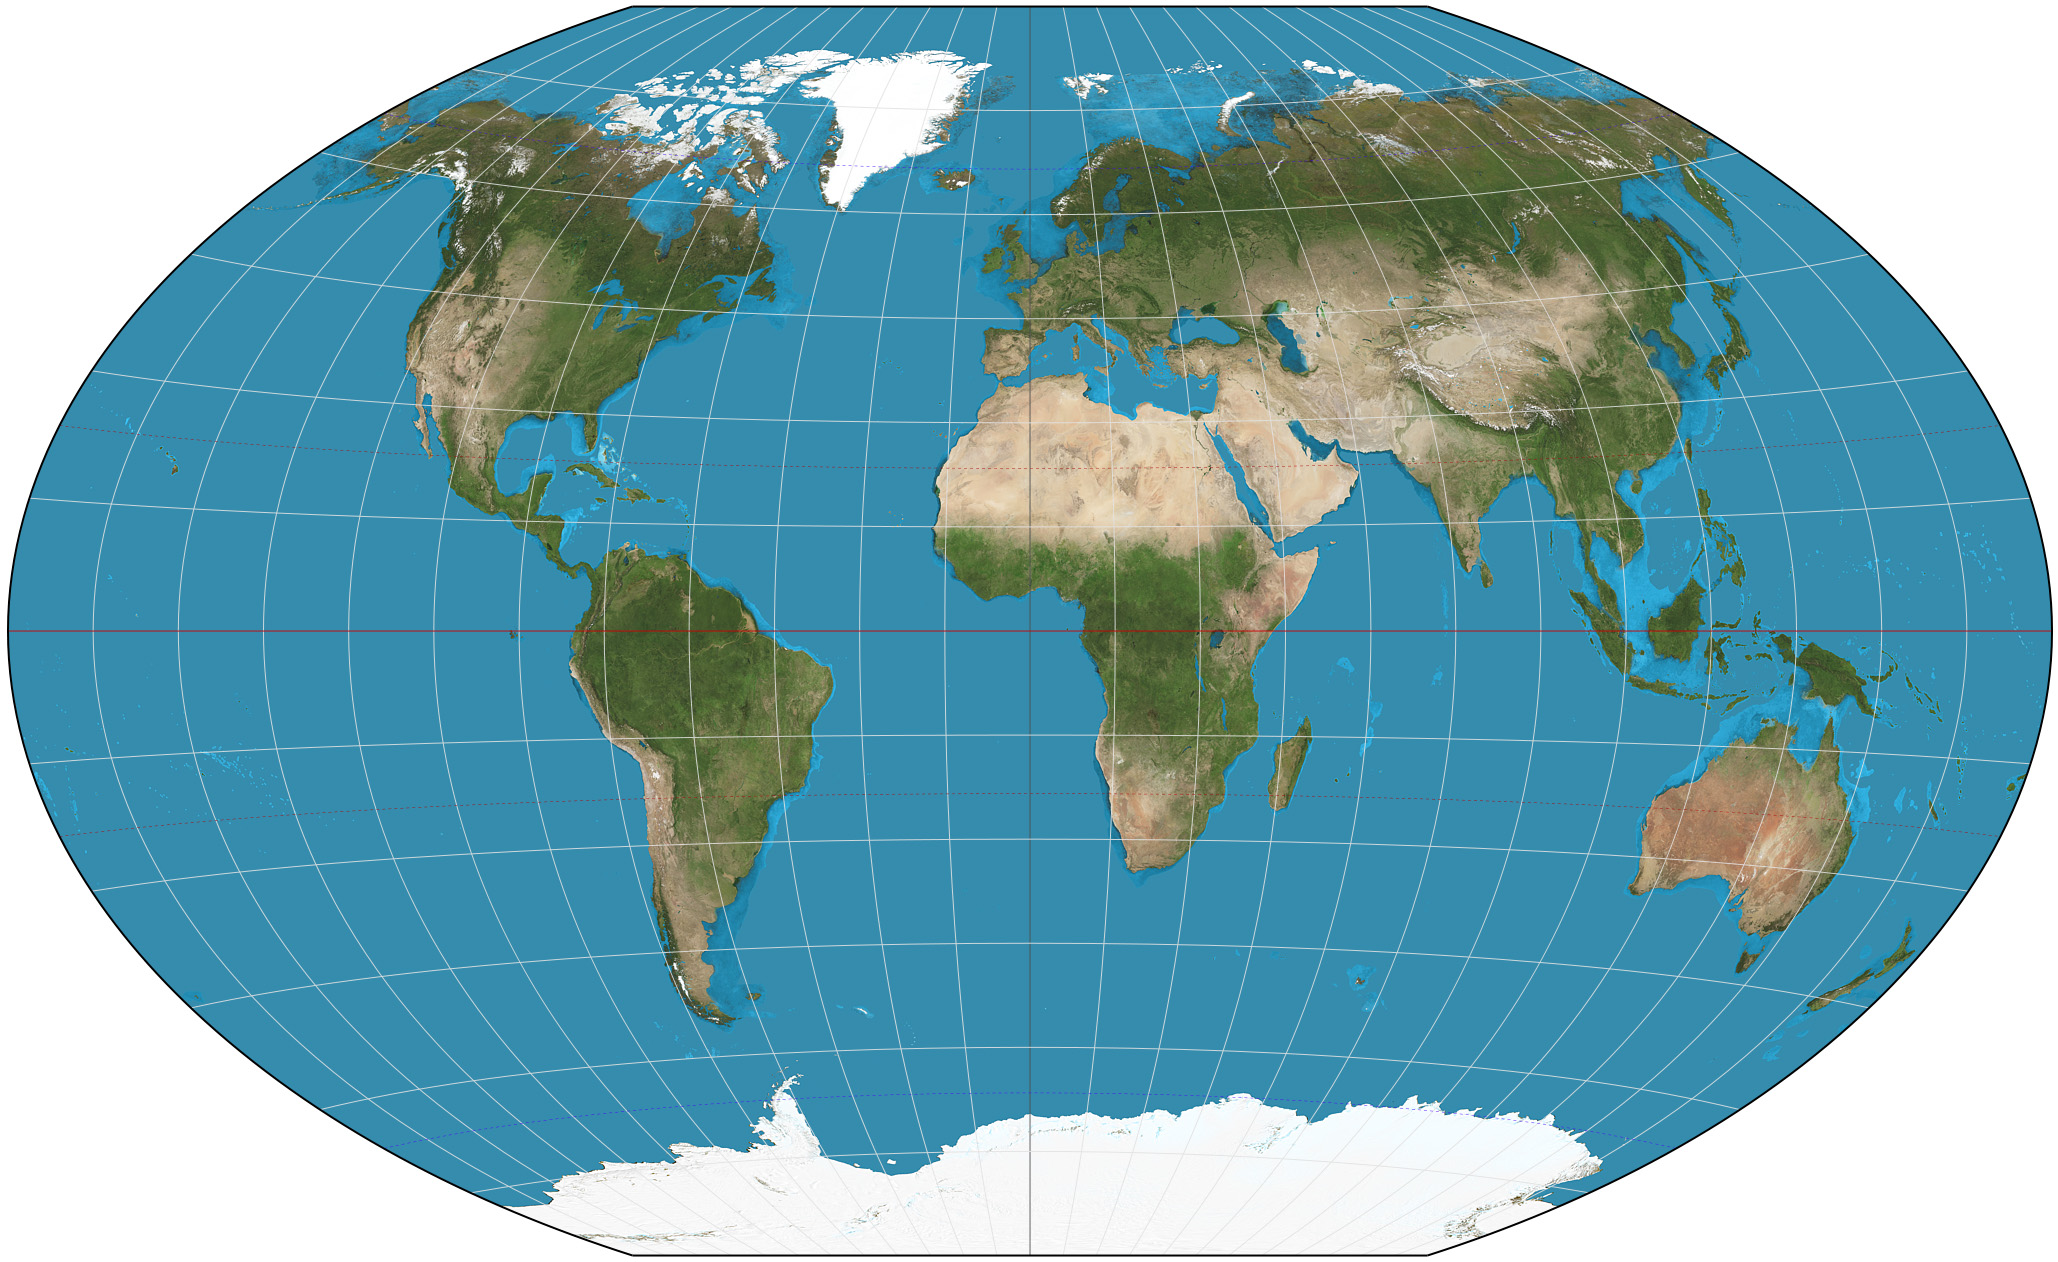 Filewinkel triple projection swg wikimedia commons filewinkel triple projection swg gumiabroncs